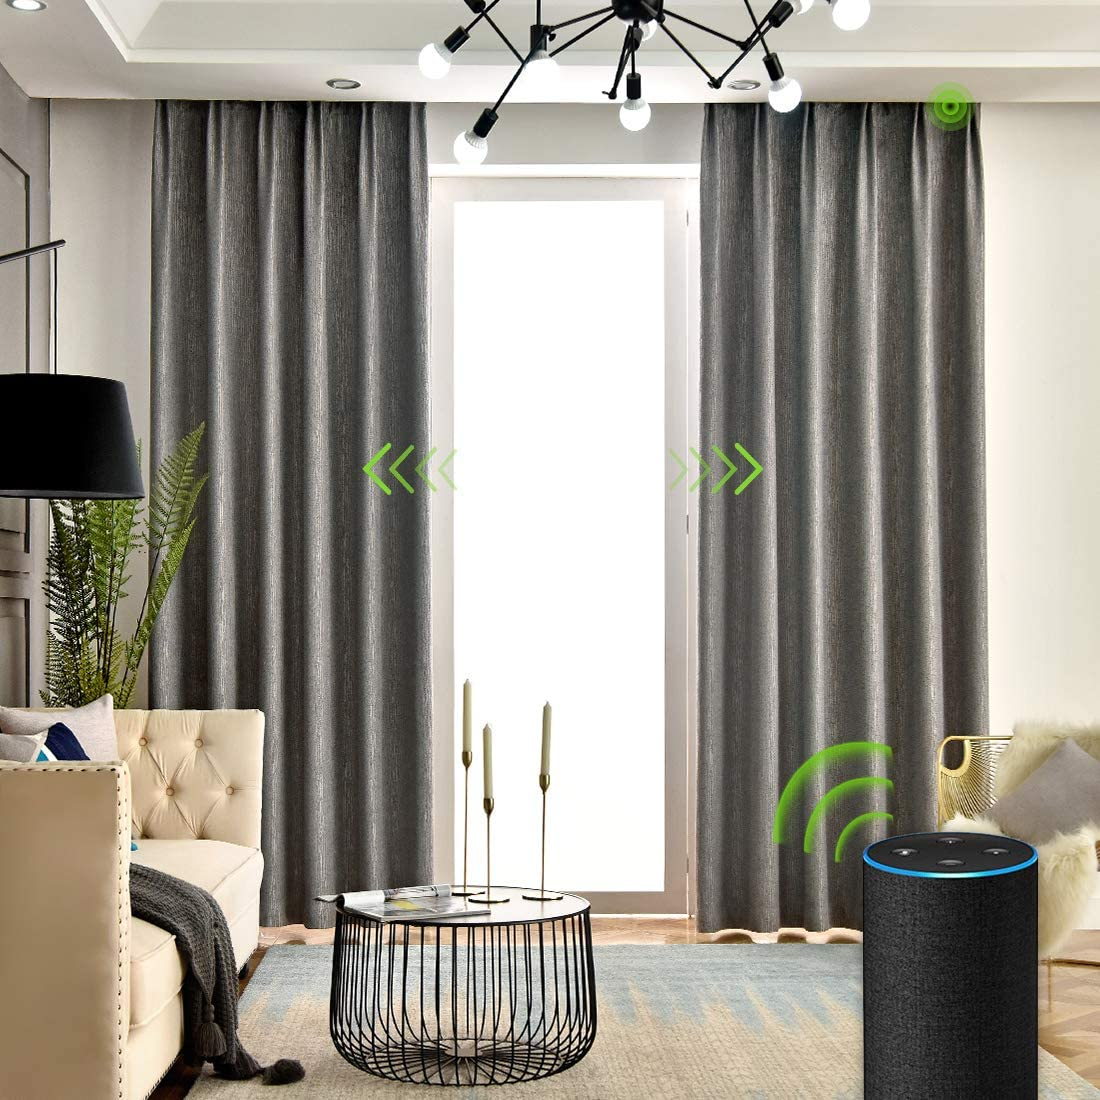 Yoolax Motorized Electric Blackout Curtain Texture Thermal Insulated Drapes Compatible with Alexa and Google Home Remote Control Smart Curtain Customized Grey, W156 XH95 Cover Area